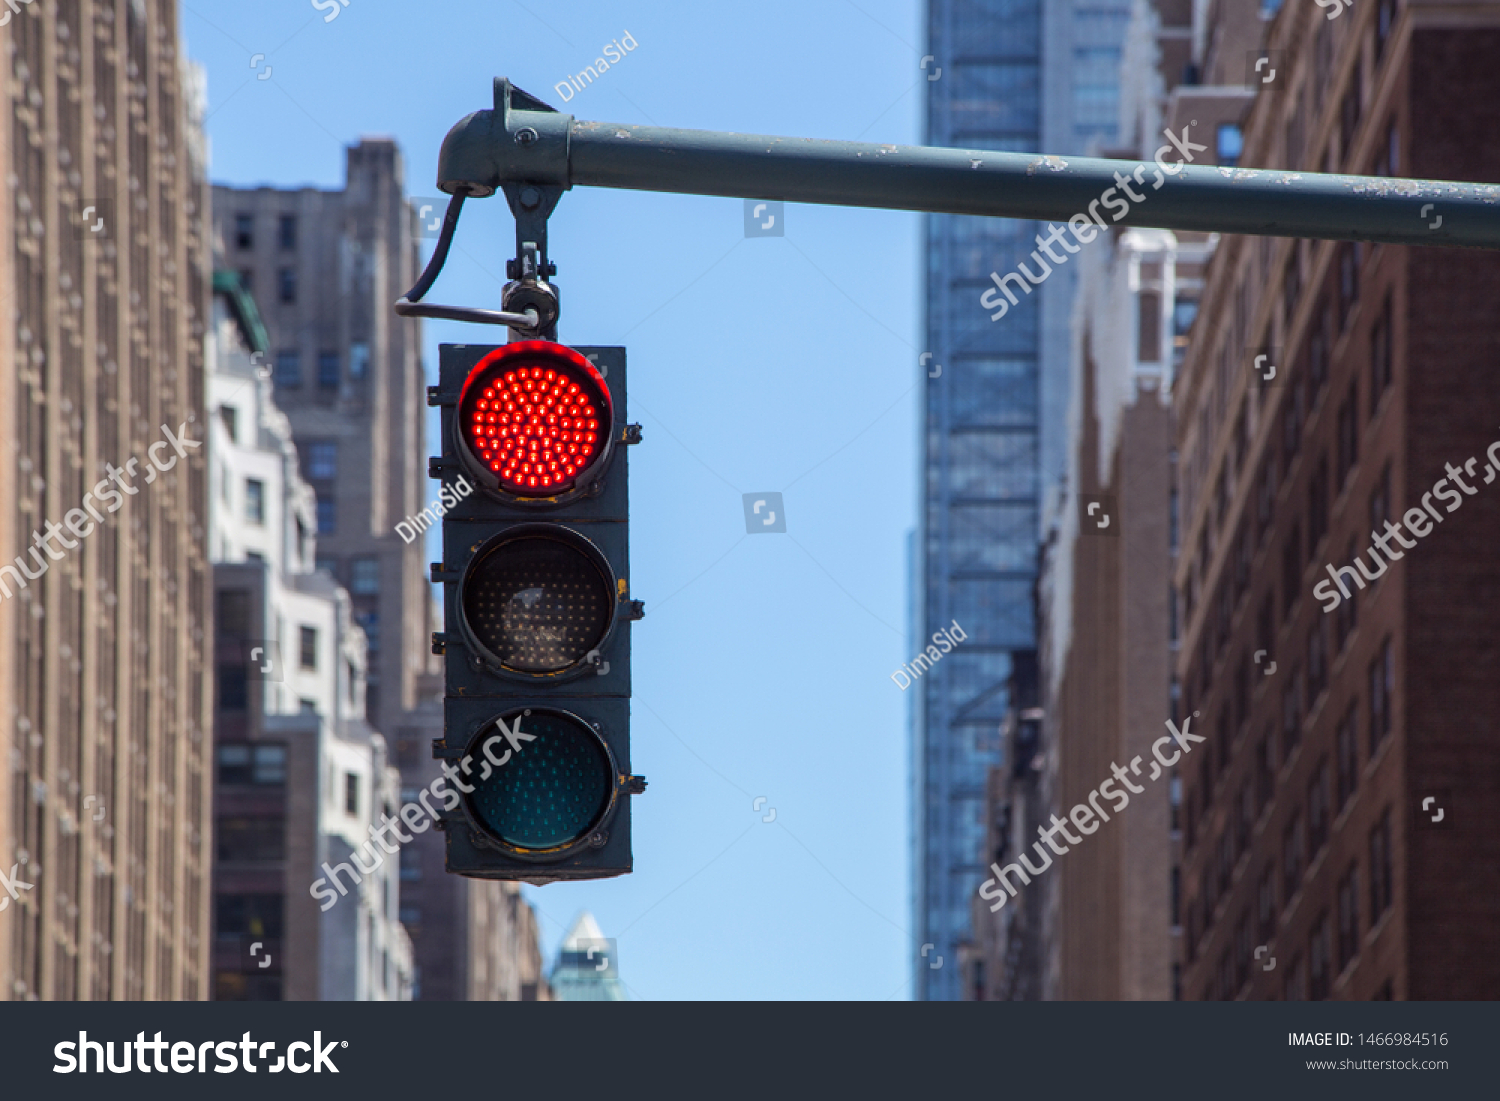 Traffic light closeup with red signal. Traffic light on the background of skyscrapers in New York. Red color traffic light with buildings in the background. Traffic light wallpaper. #1466984516